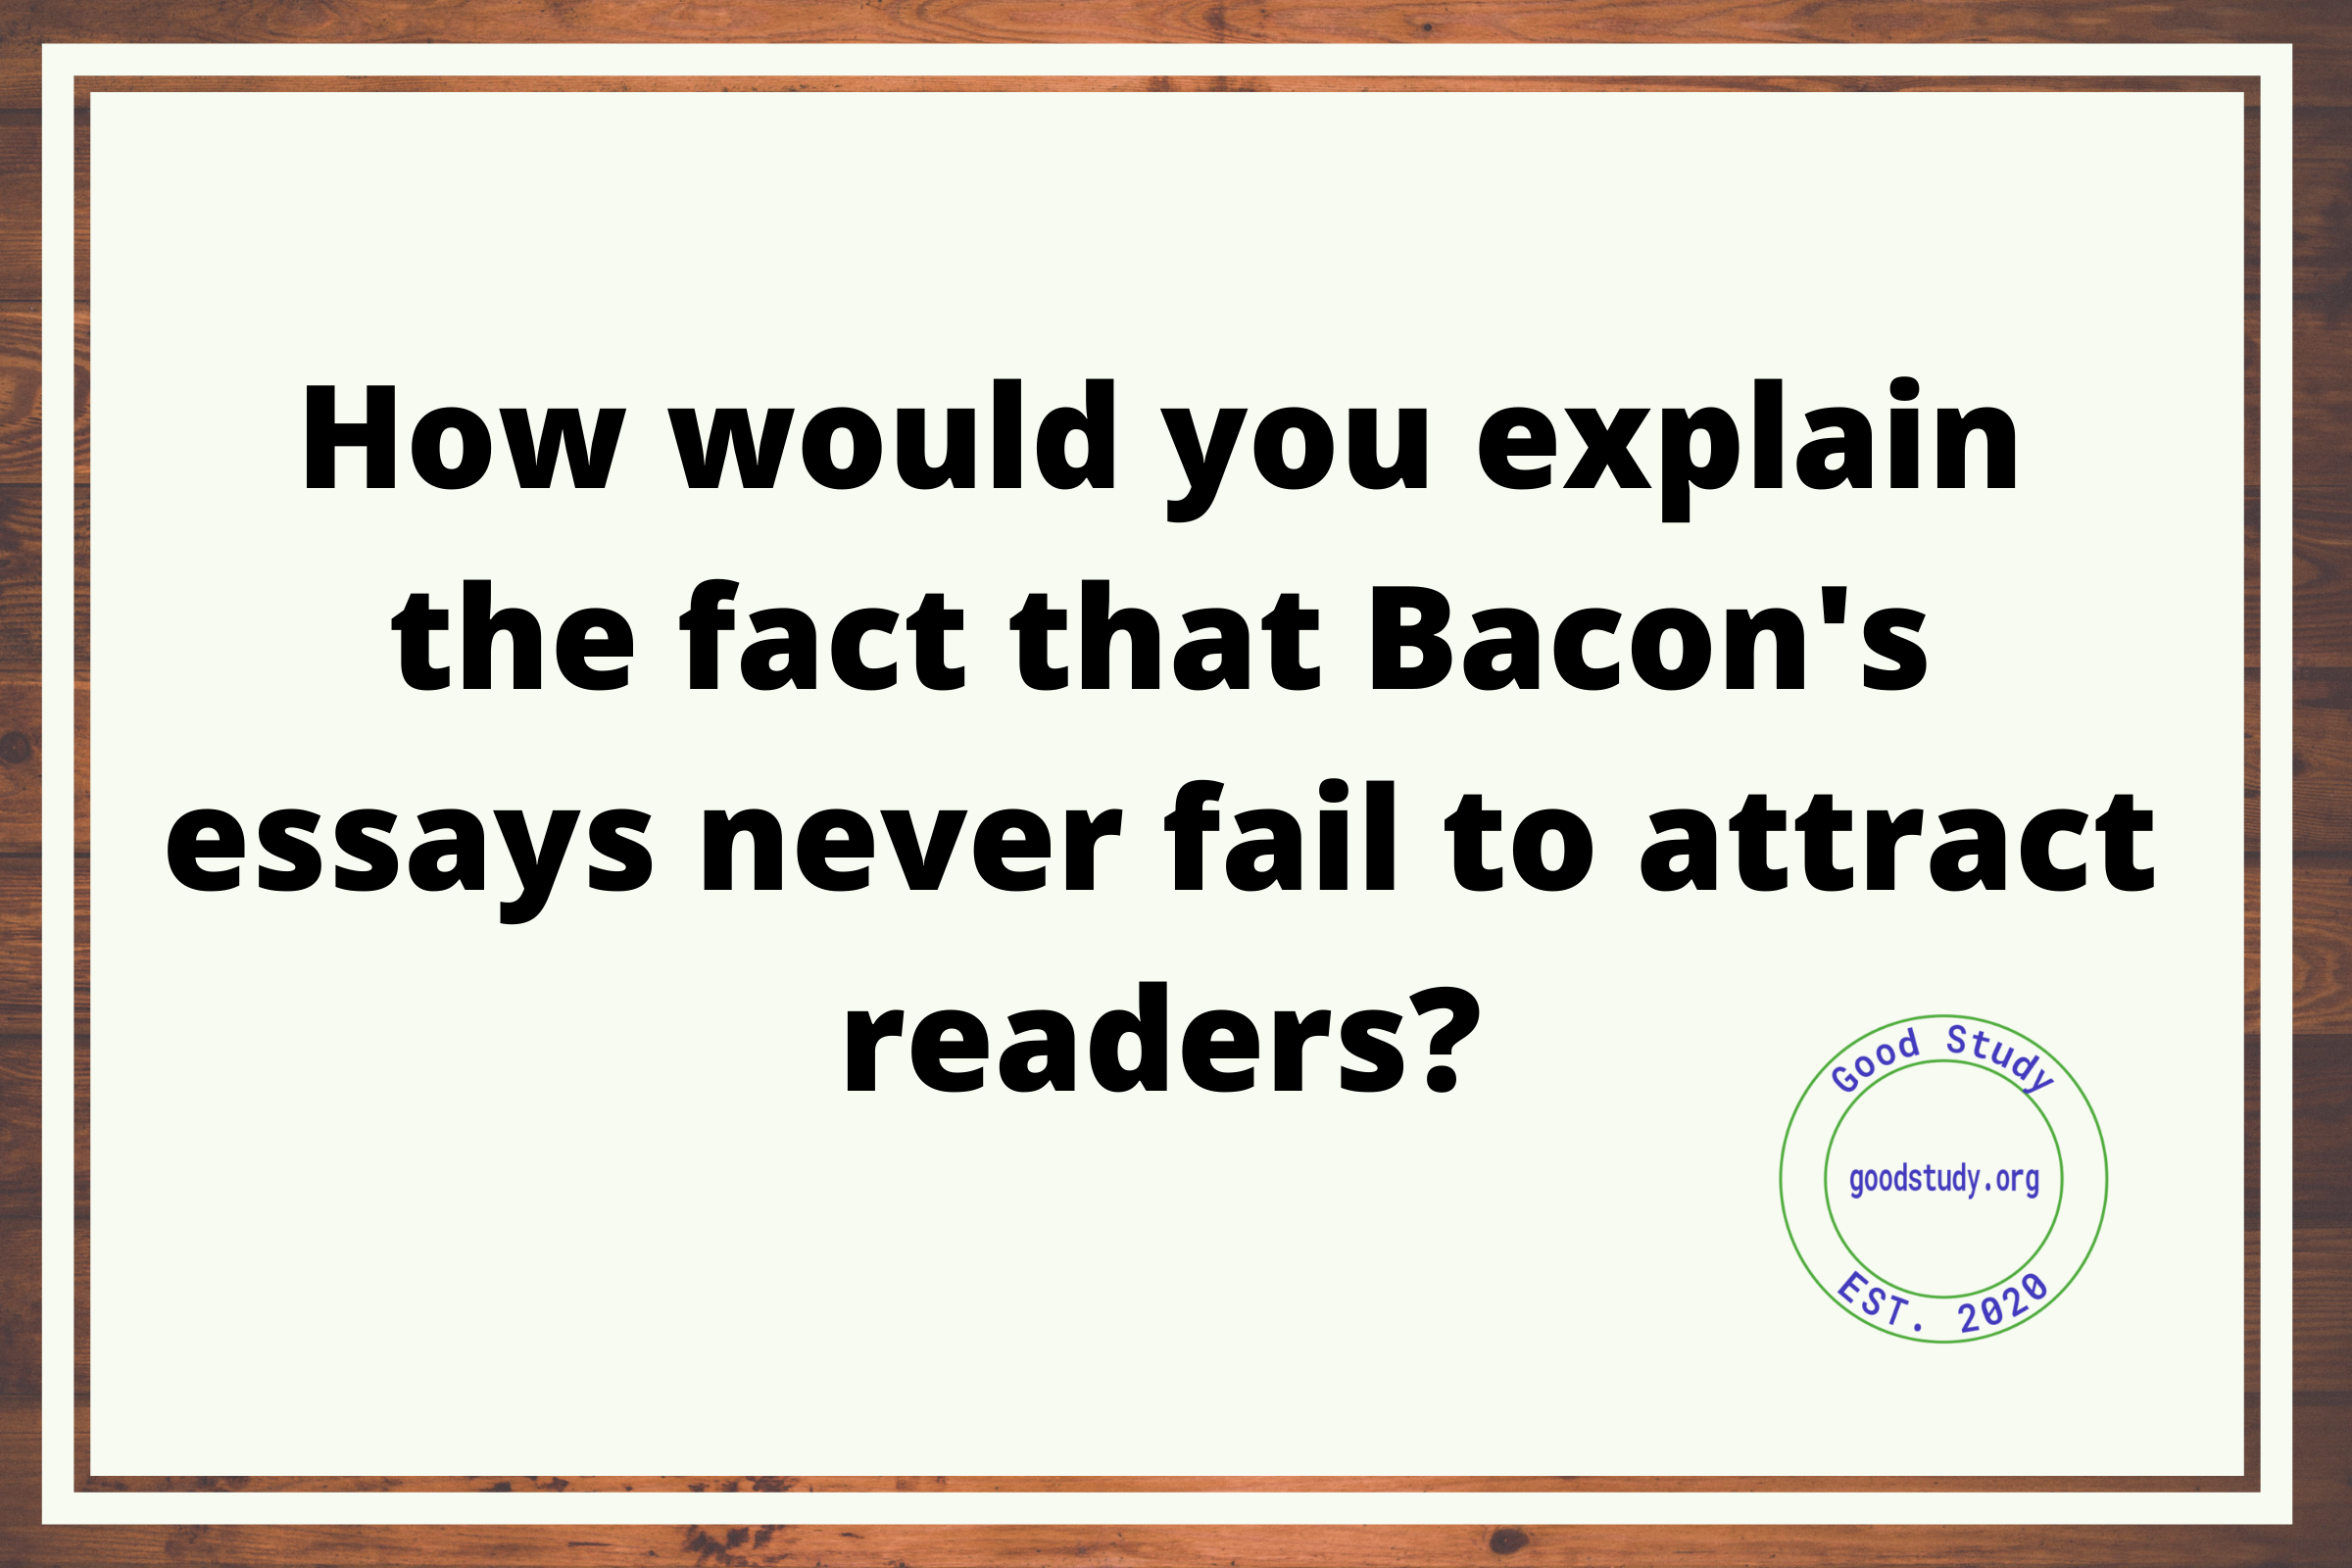 How would you explain the fact that Bacon's essays never fail to attract readers?